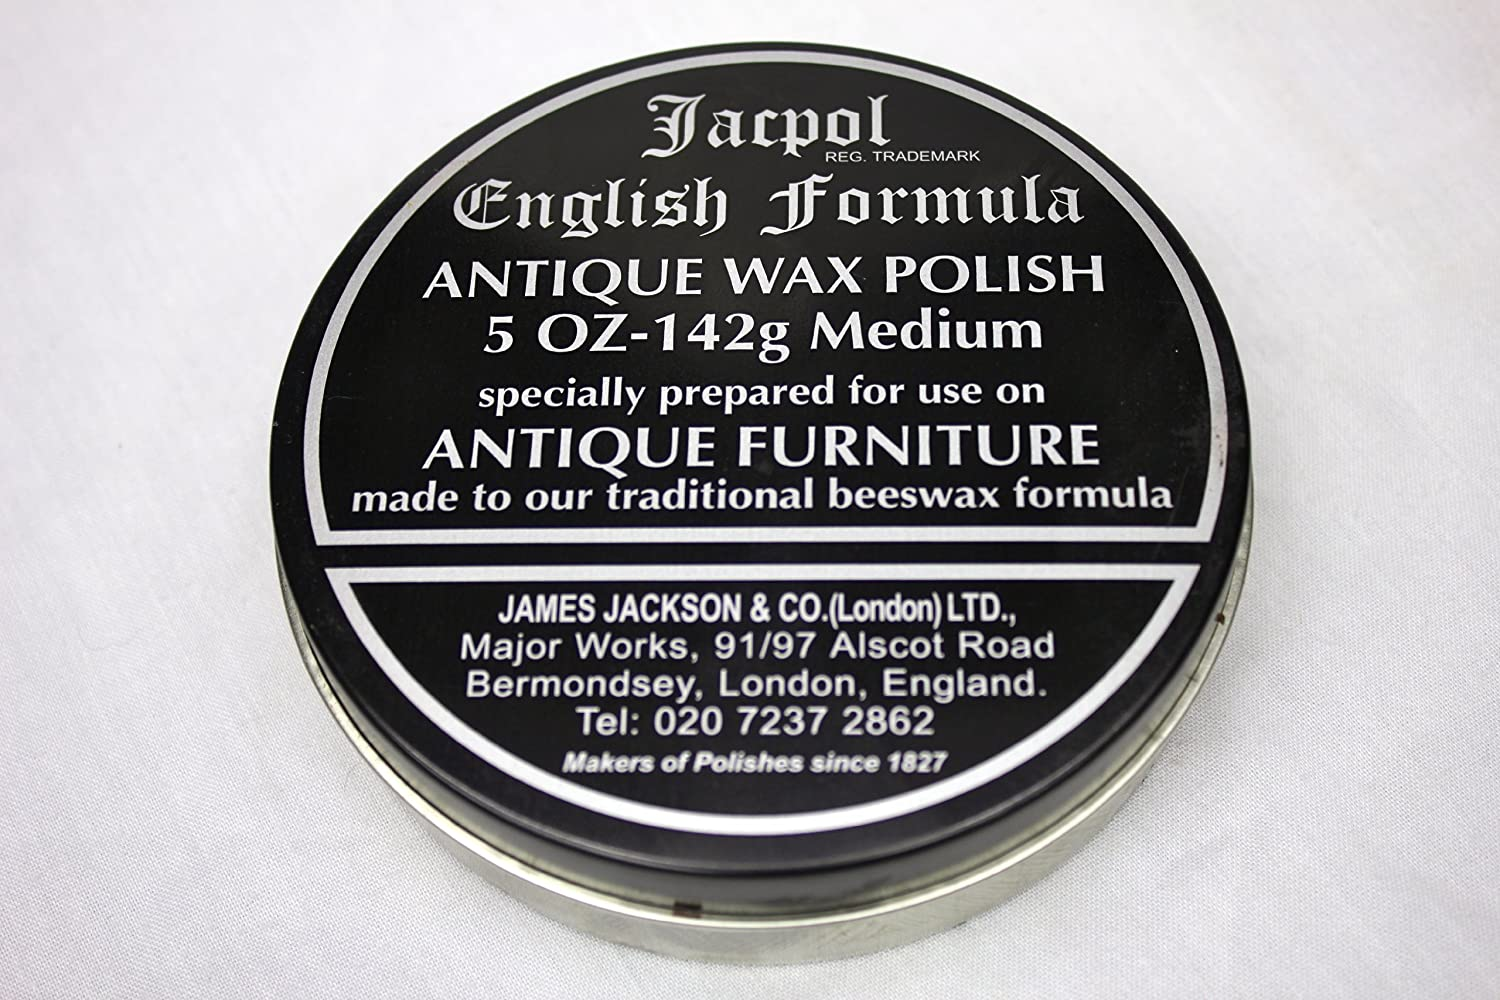 Jacpol Beeswax English Formula Antique Furniture Wax Polish (Medium Shade) - 5oz 142g James Jackson & Co (LONDON) Small-Medium